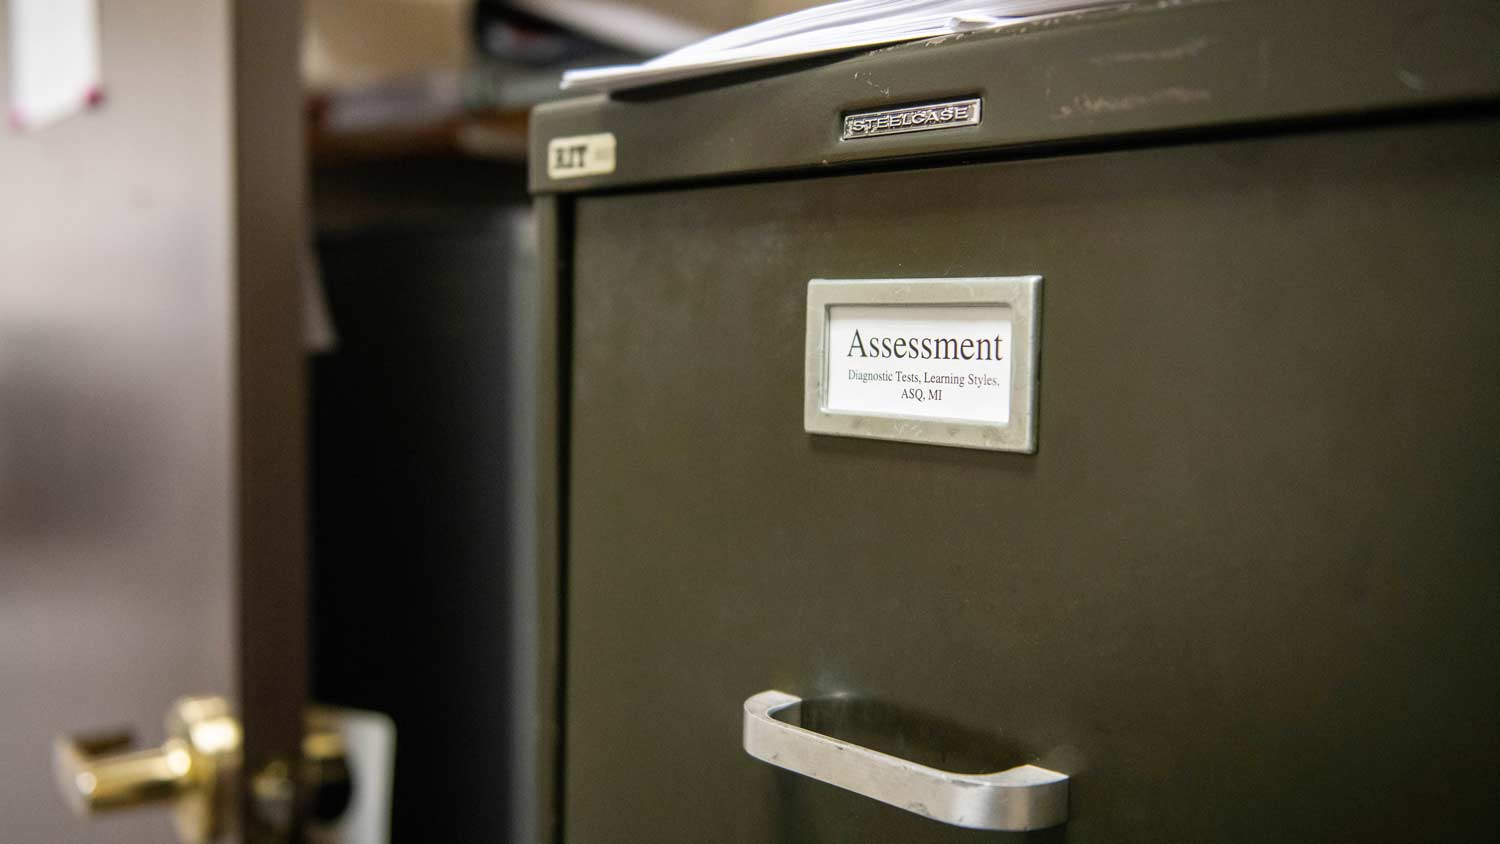 Filling cabinet with a label of Assessment